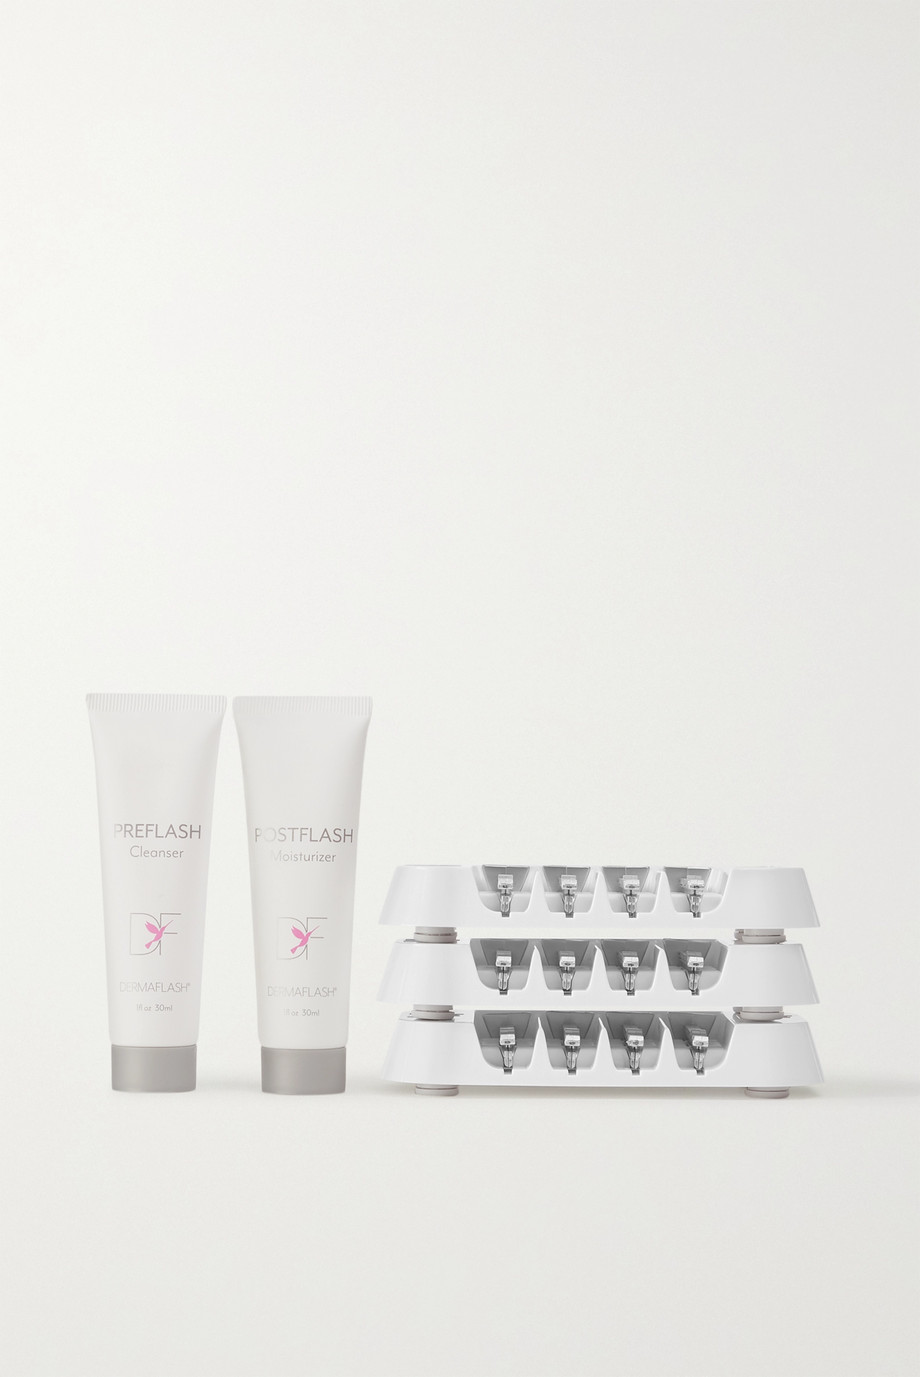 Dermaflash DERMAFLASH Luxe Essentials Replenishment Kit x 12 – Nachfüll-Set